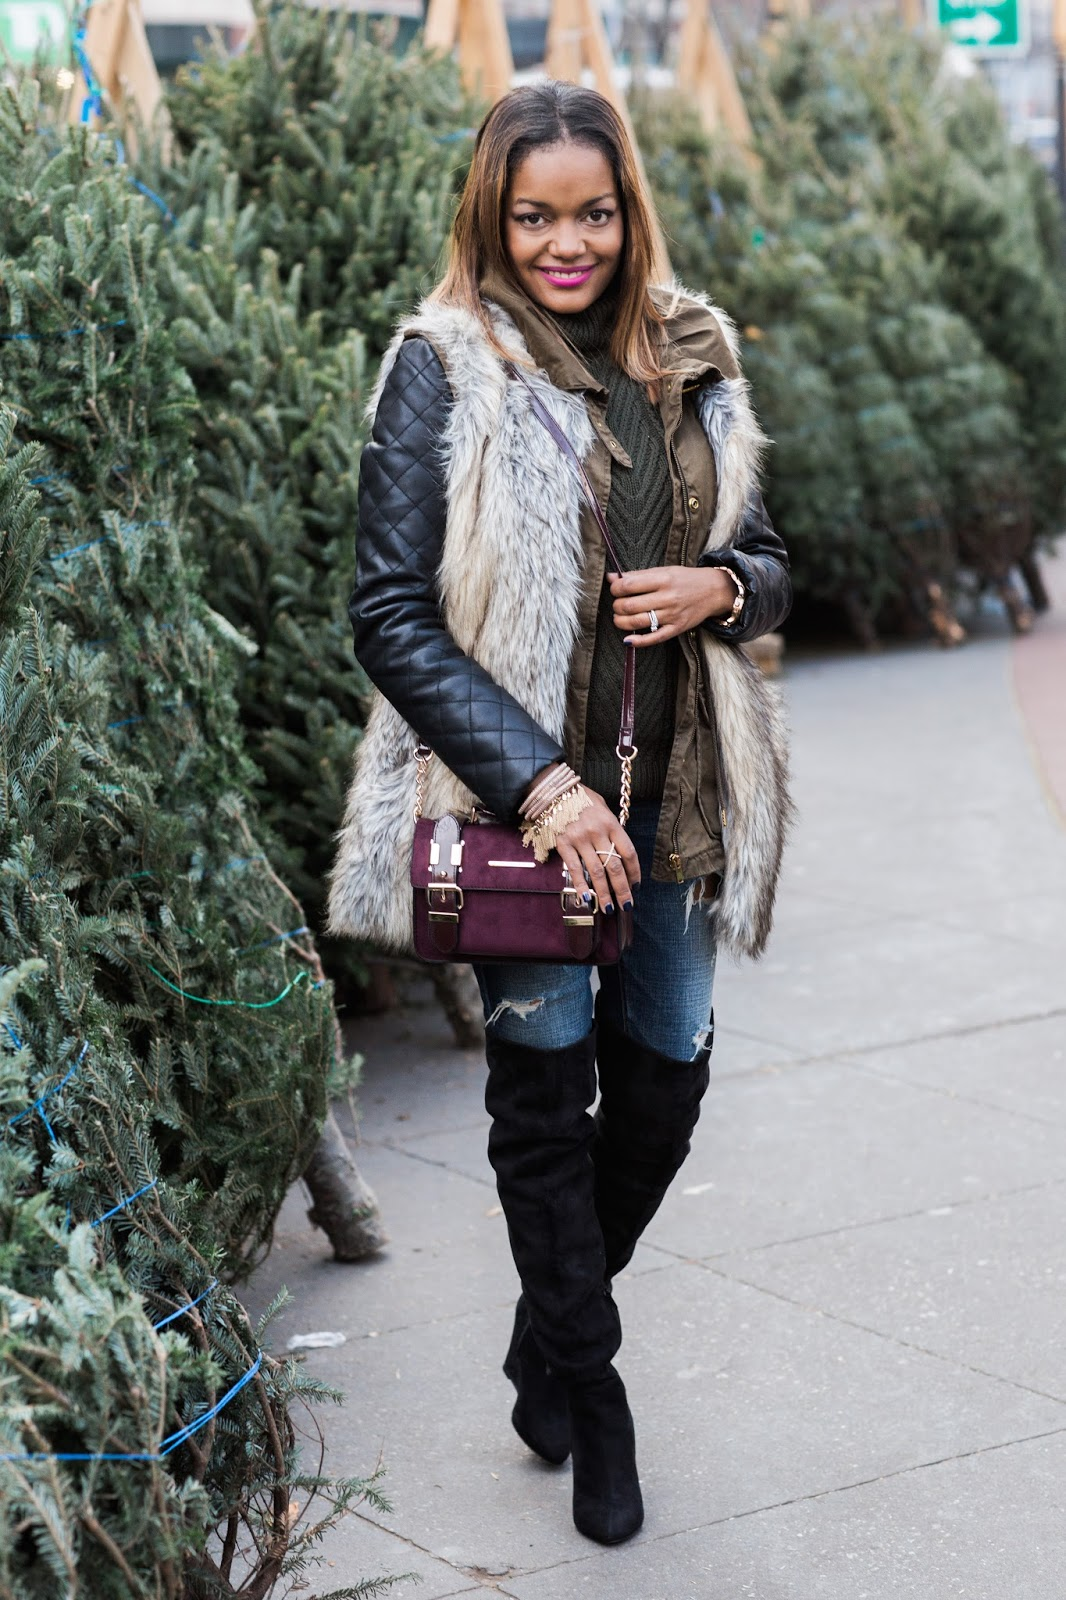 dallas blogger, fashion blogger, new york street style, over the knee boots, just fab boots, asos, cross body bag, how to wear fur vest, faux fur vest, target, bauble bar, winter fashion, how to layer clothes